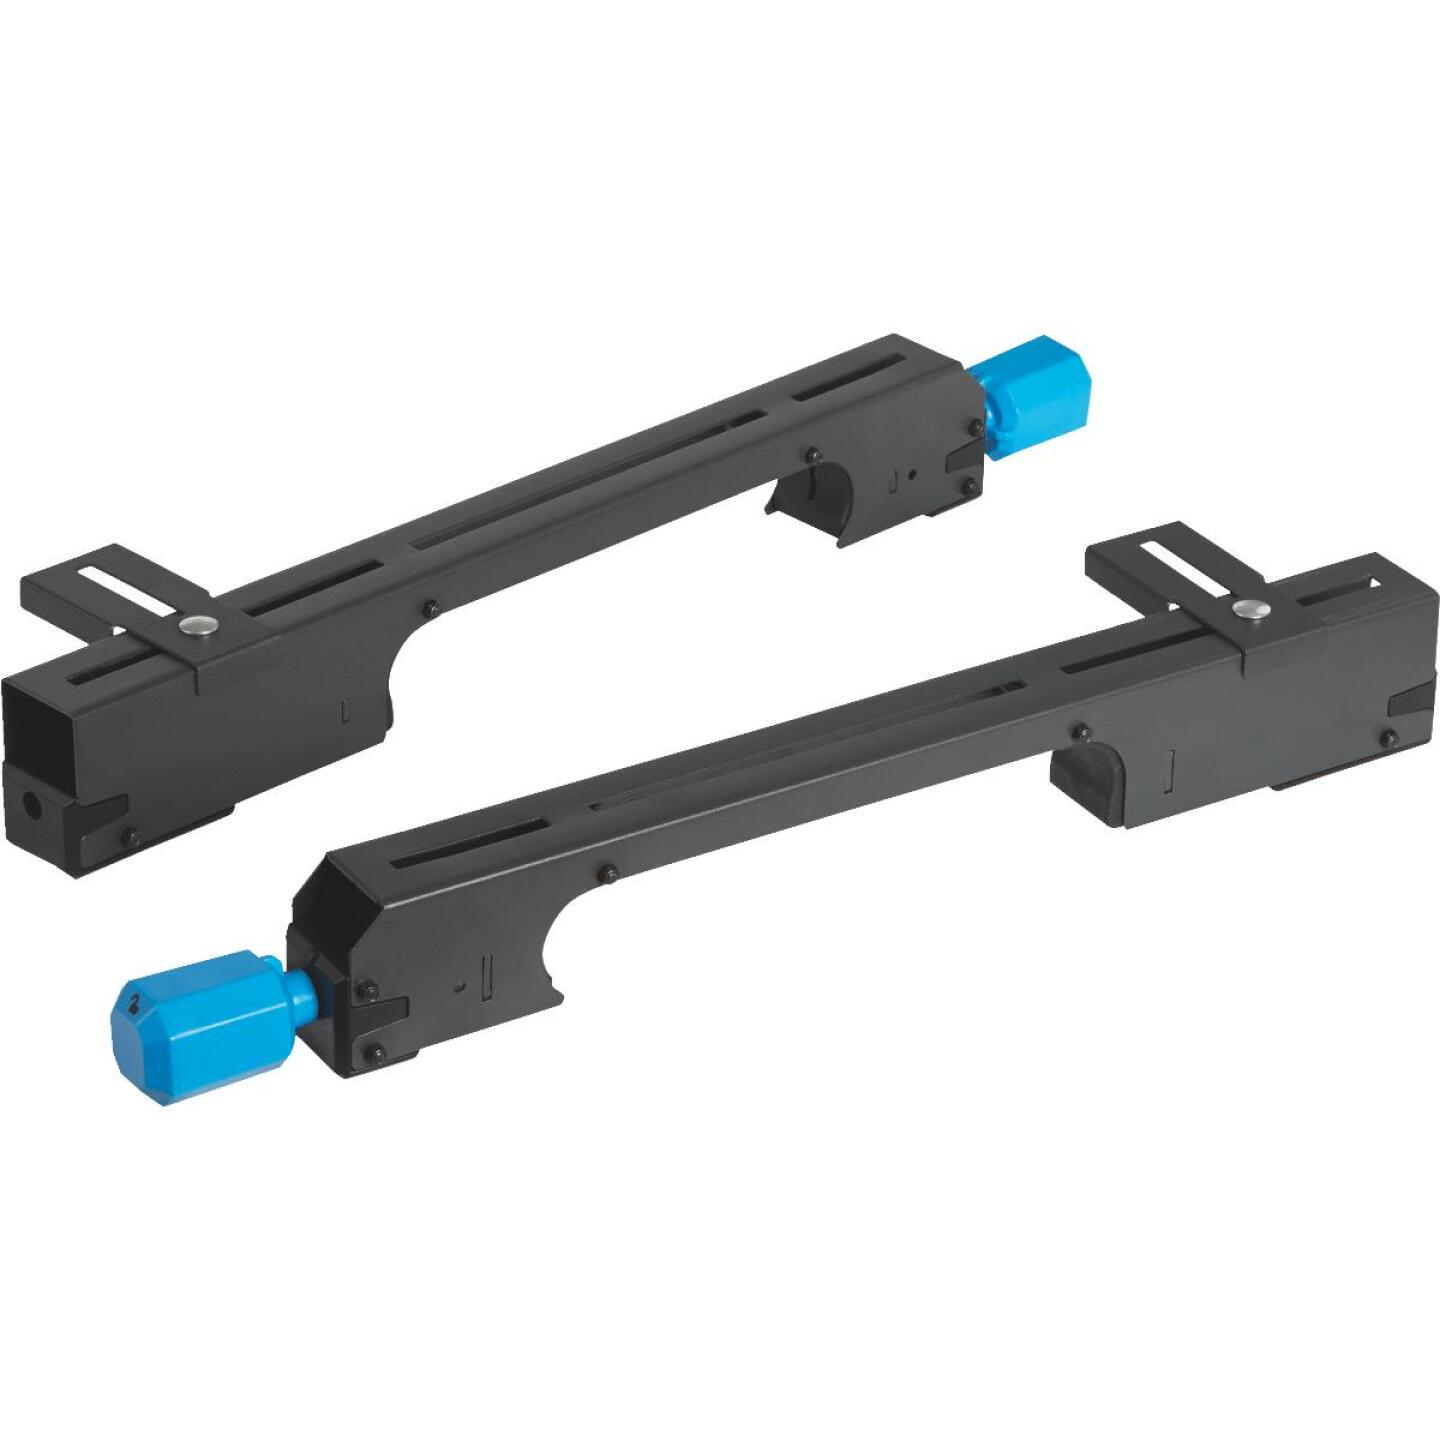 Channellock Miter Saw Tool Mounting Brackets (2-Piece) Image 1